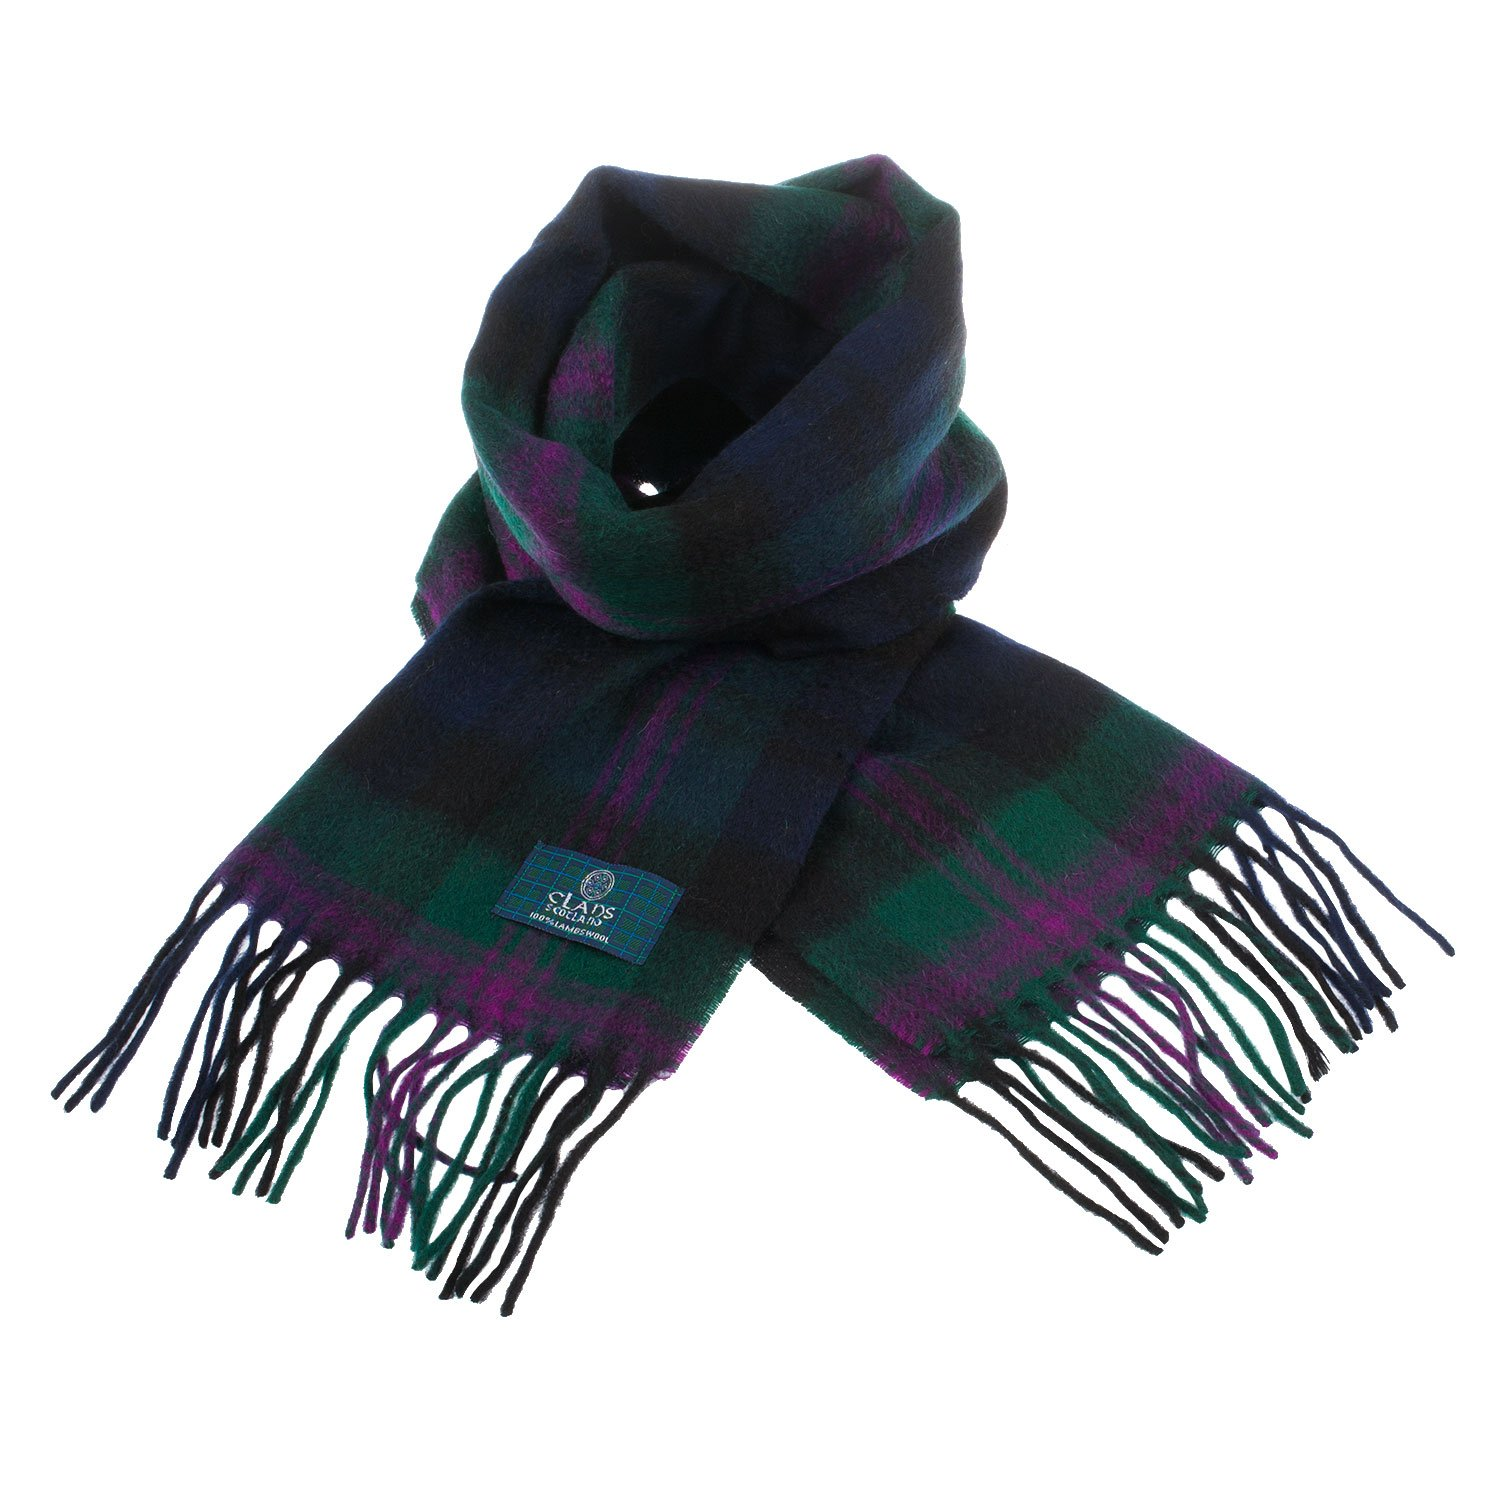 91176b2d22f98 Best Rated in Men's Scarves & Helpful Customer Reviews - Amazon.co.uk